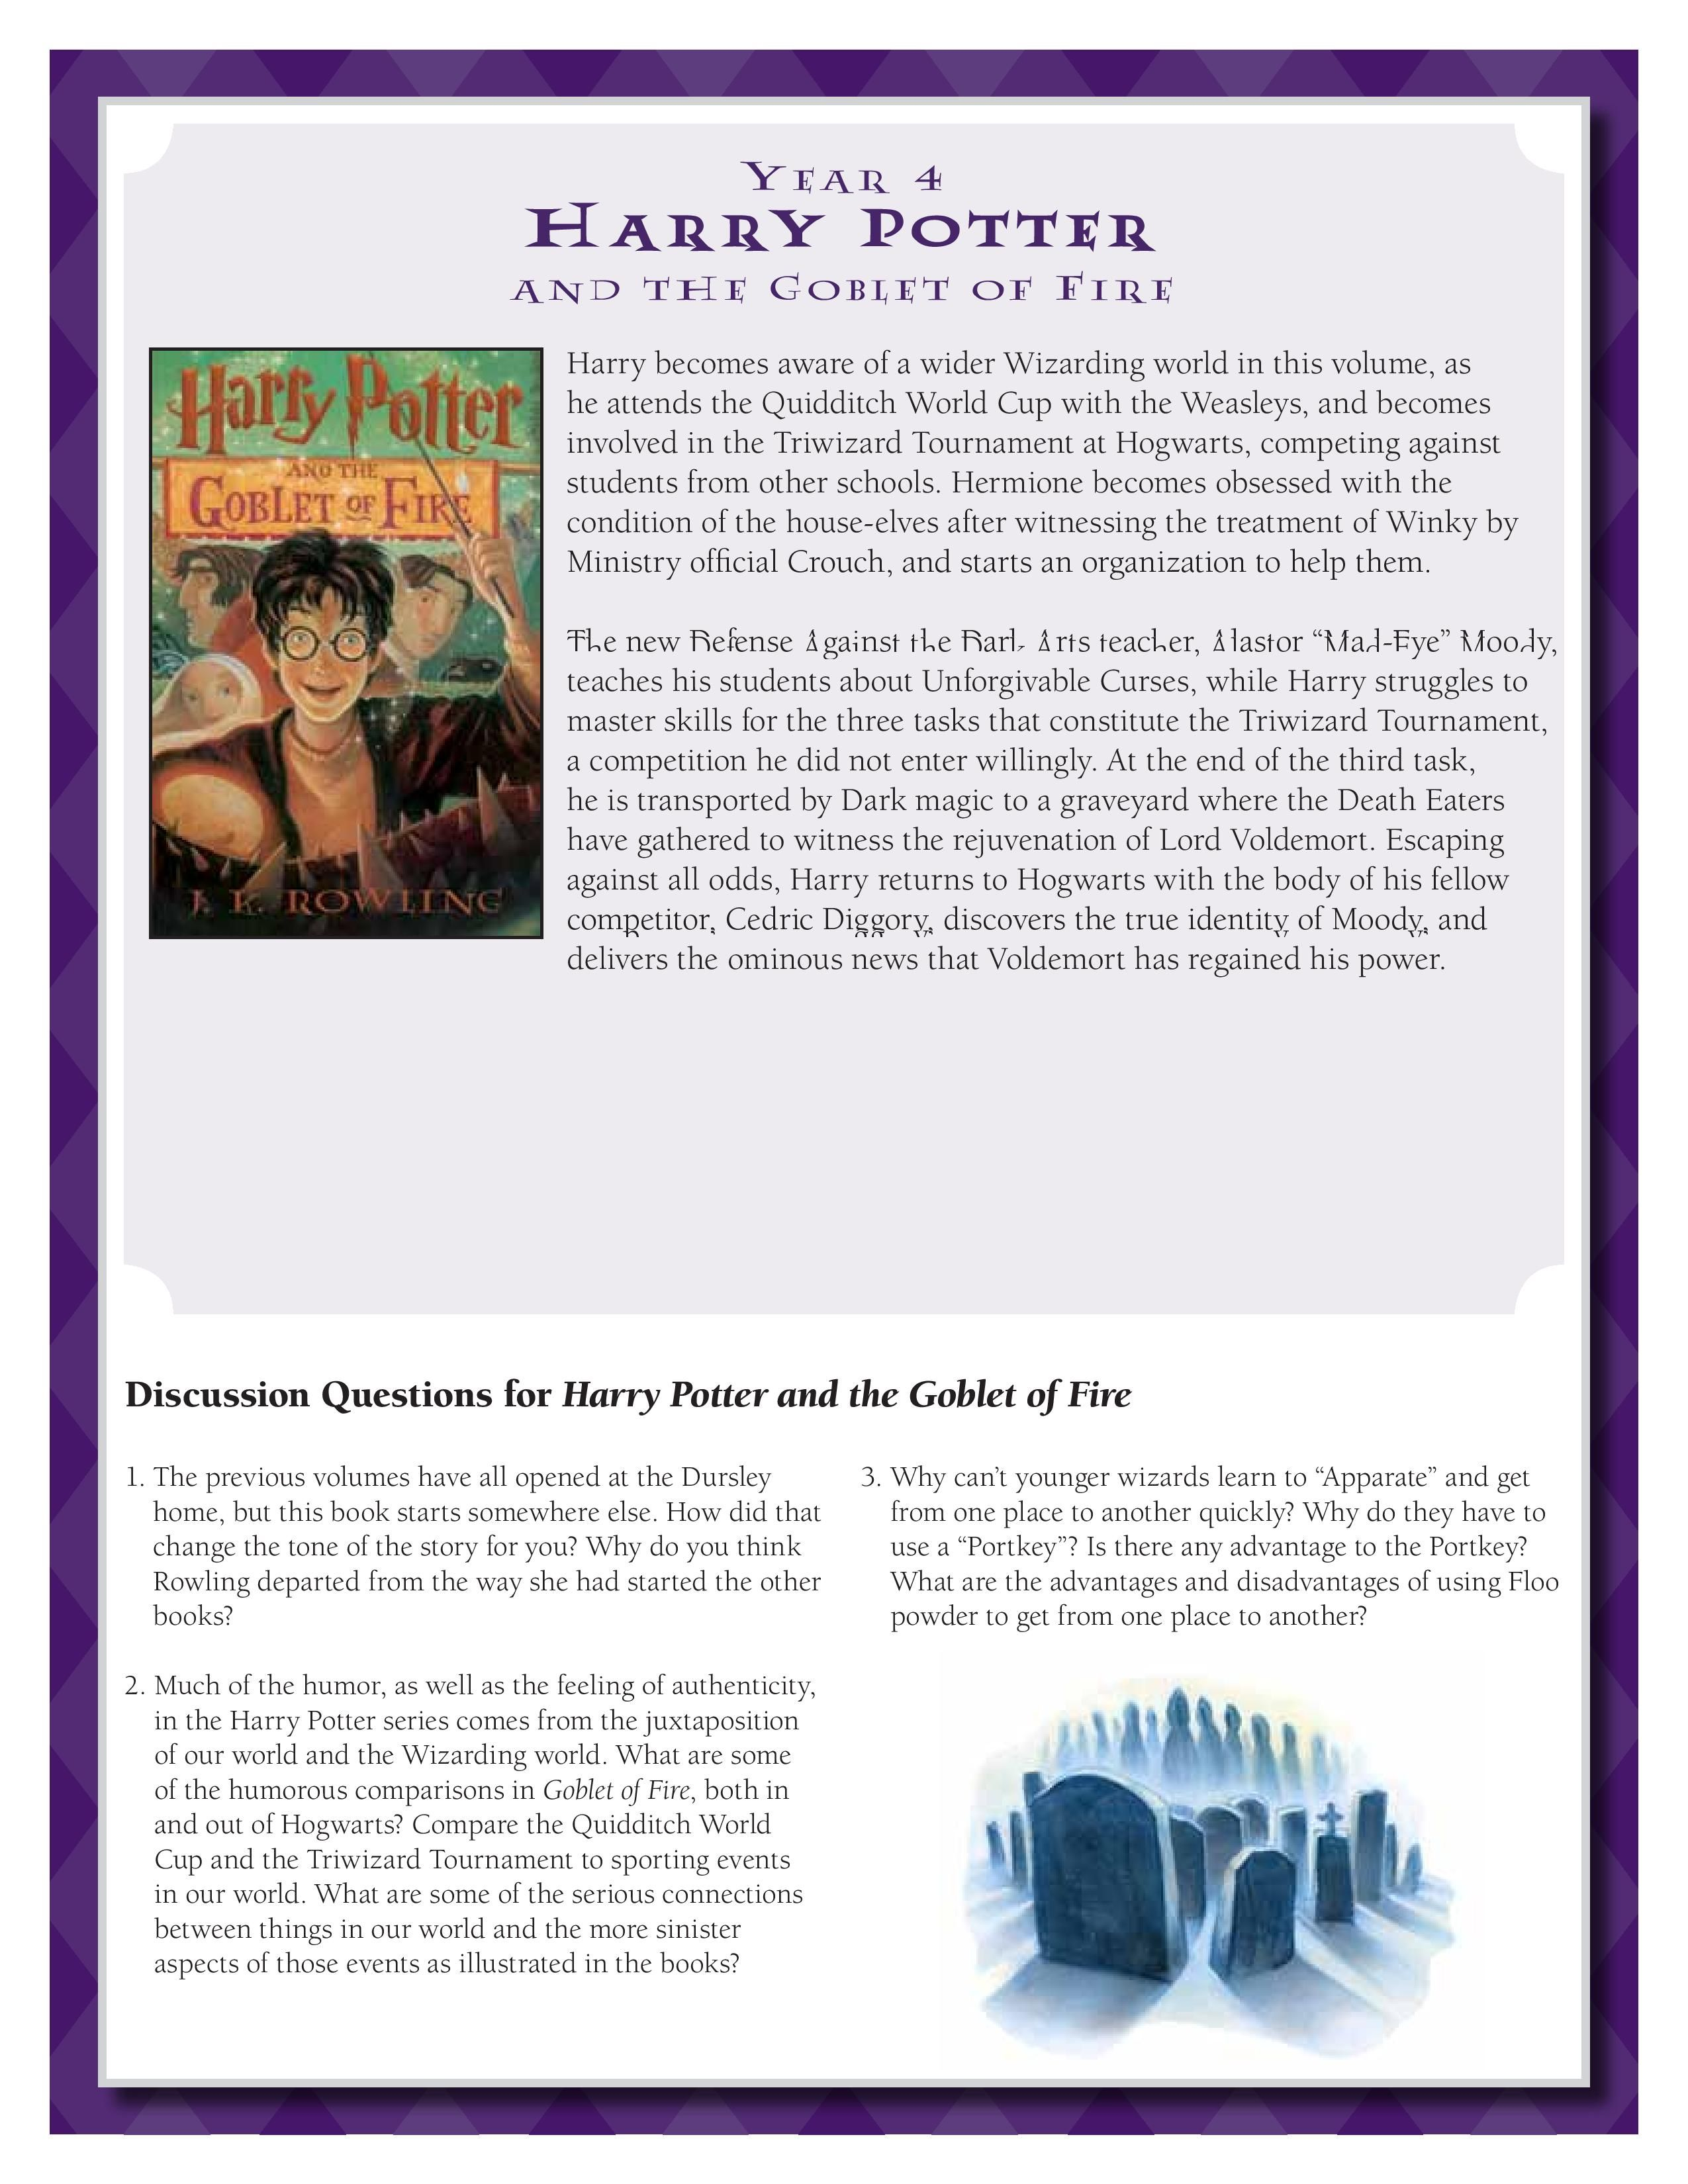 Discussion Guide For Harry Potter And The Goblet Of Fire By J K Rowling Download By Clicking